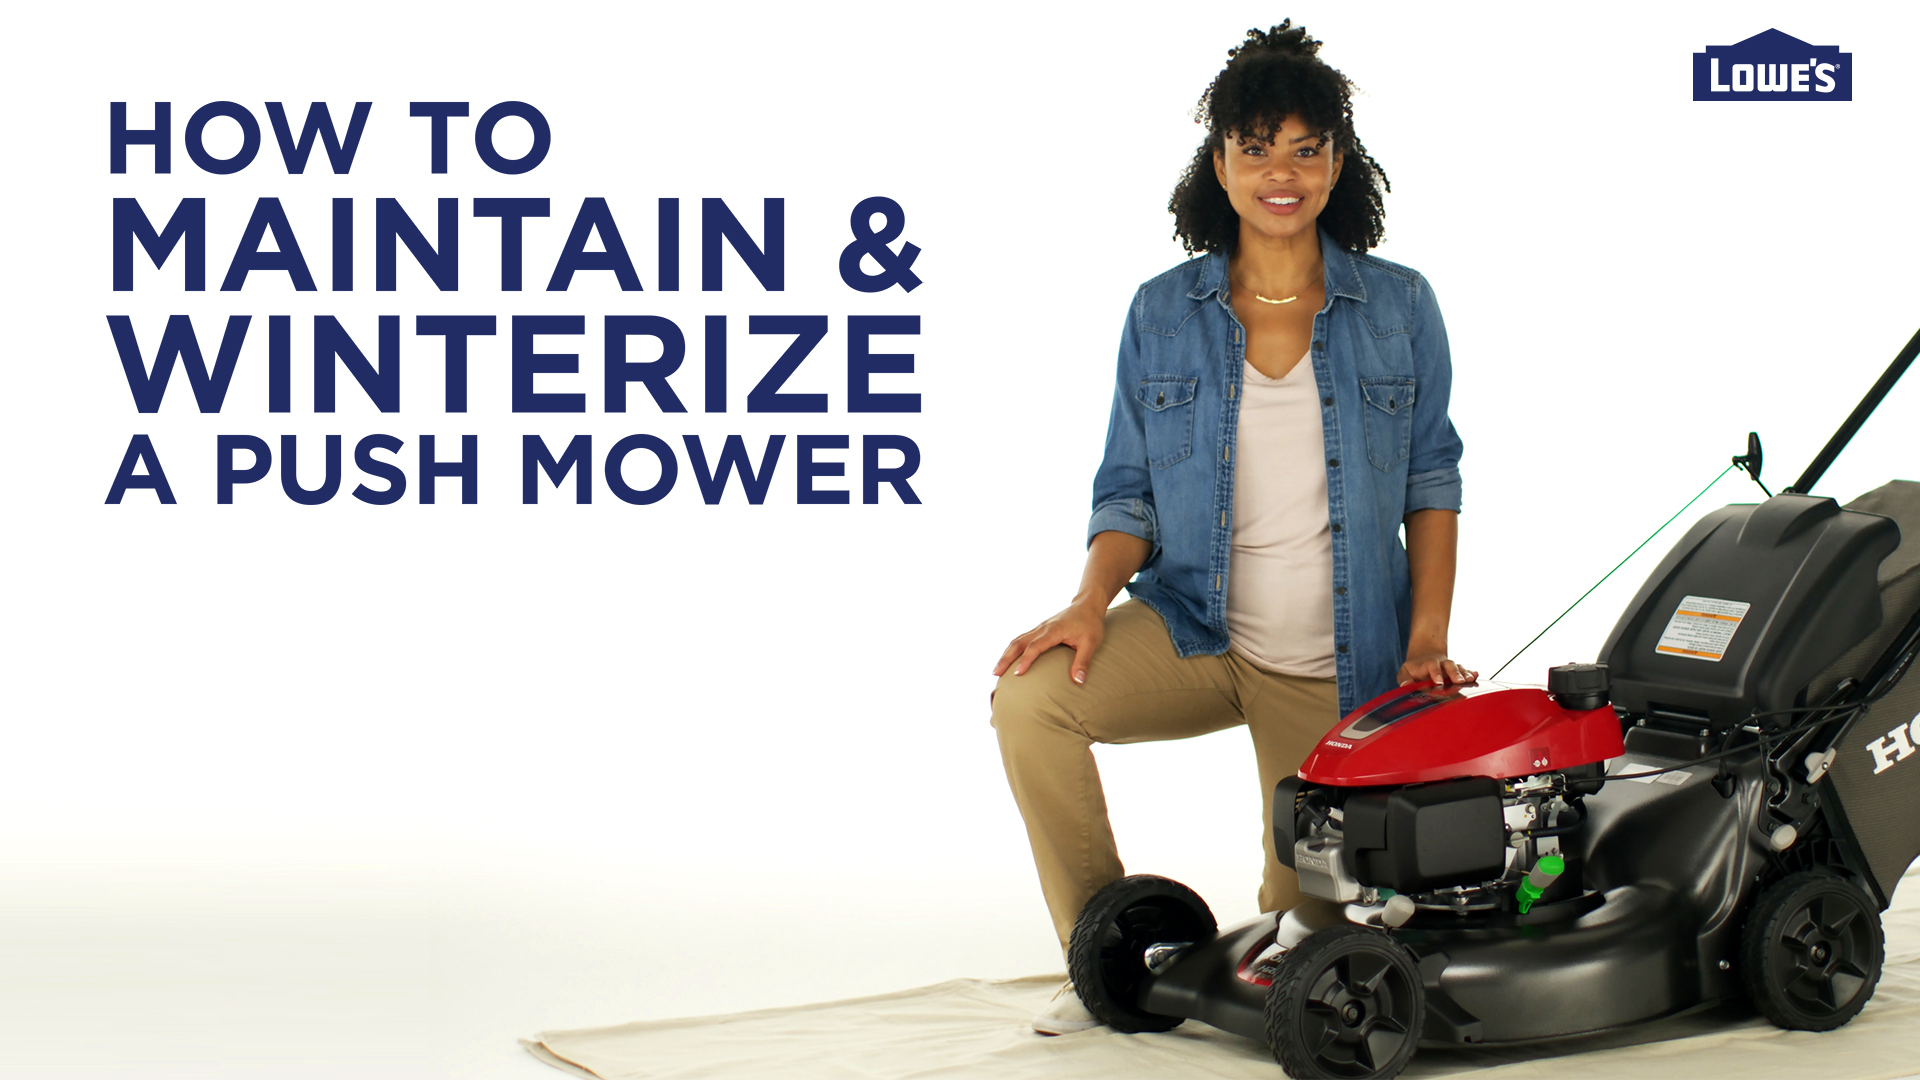 Winterize a Push Mower